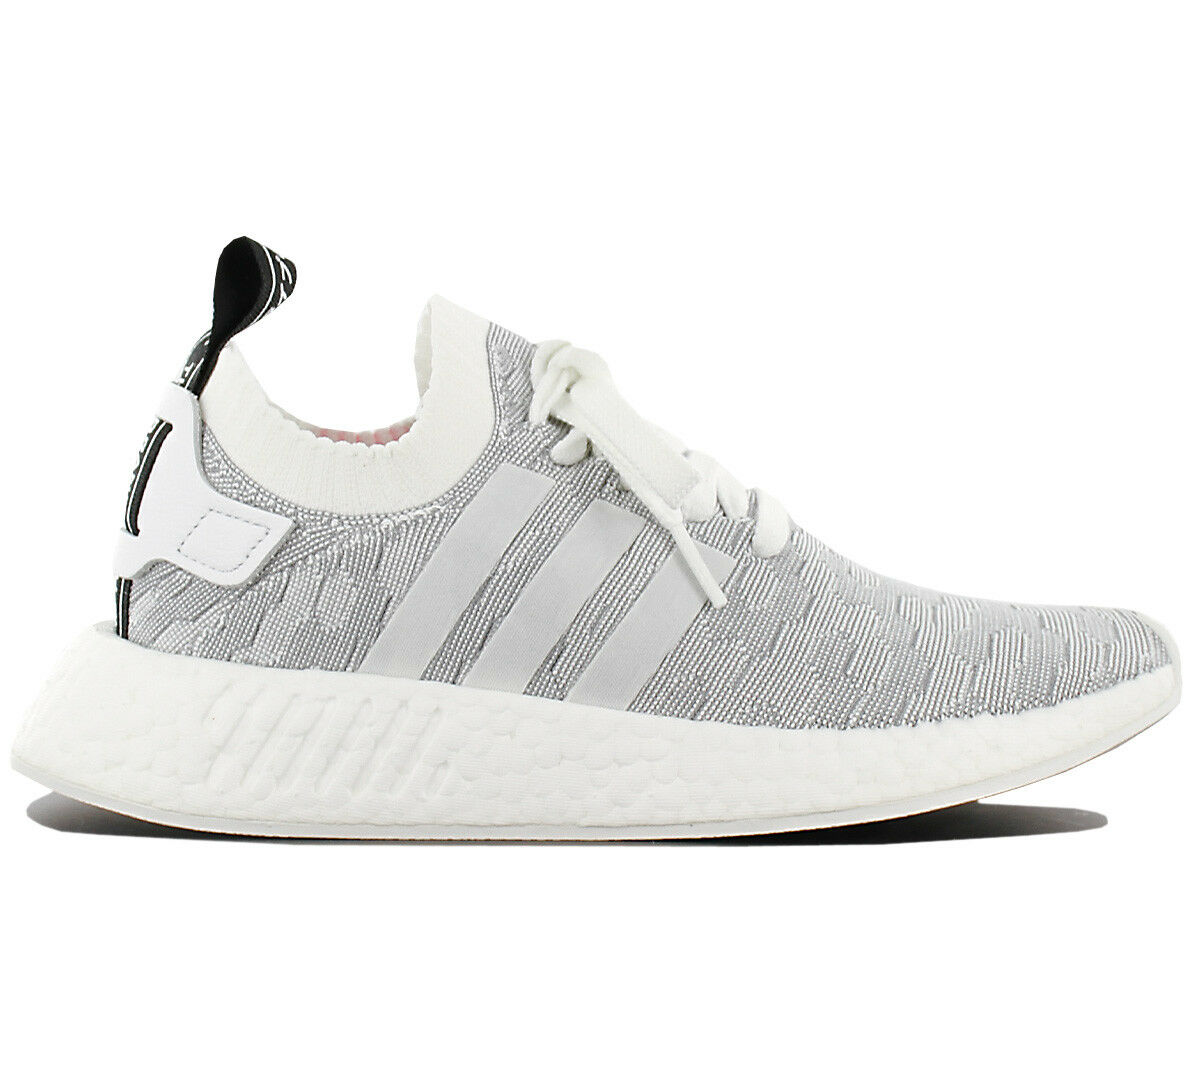 Adidas Originals Nmd R2 Pk W Primeknit Ladies Trainers shoes R1 By9520